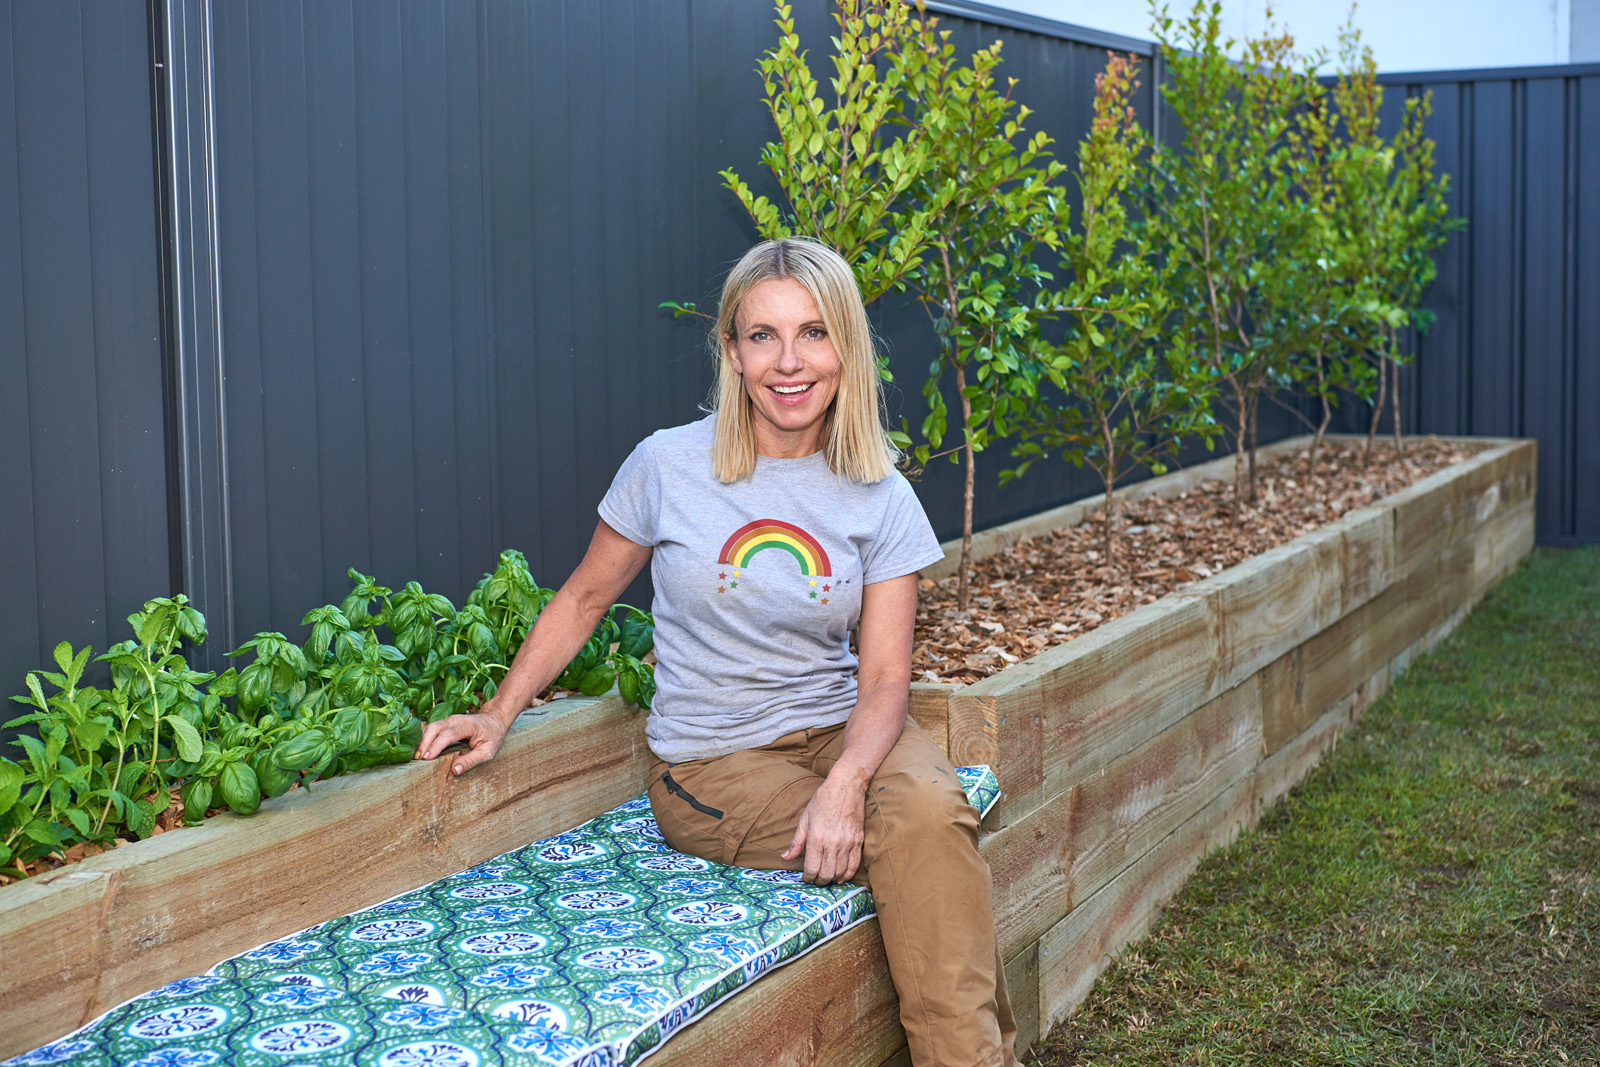 Cherie-Barber_Renovating-For-Profit_Backyard-Makeover-Garden-Bench